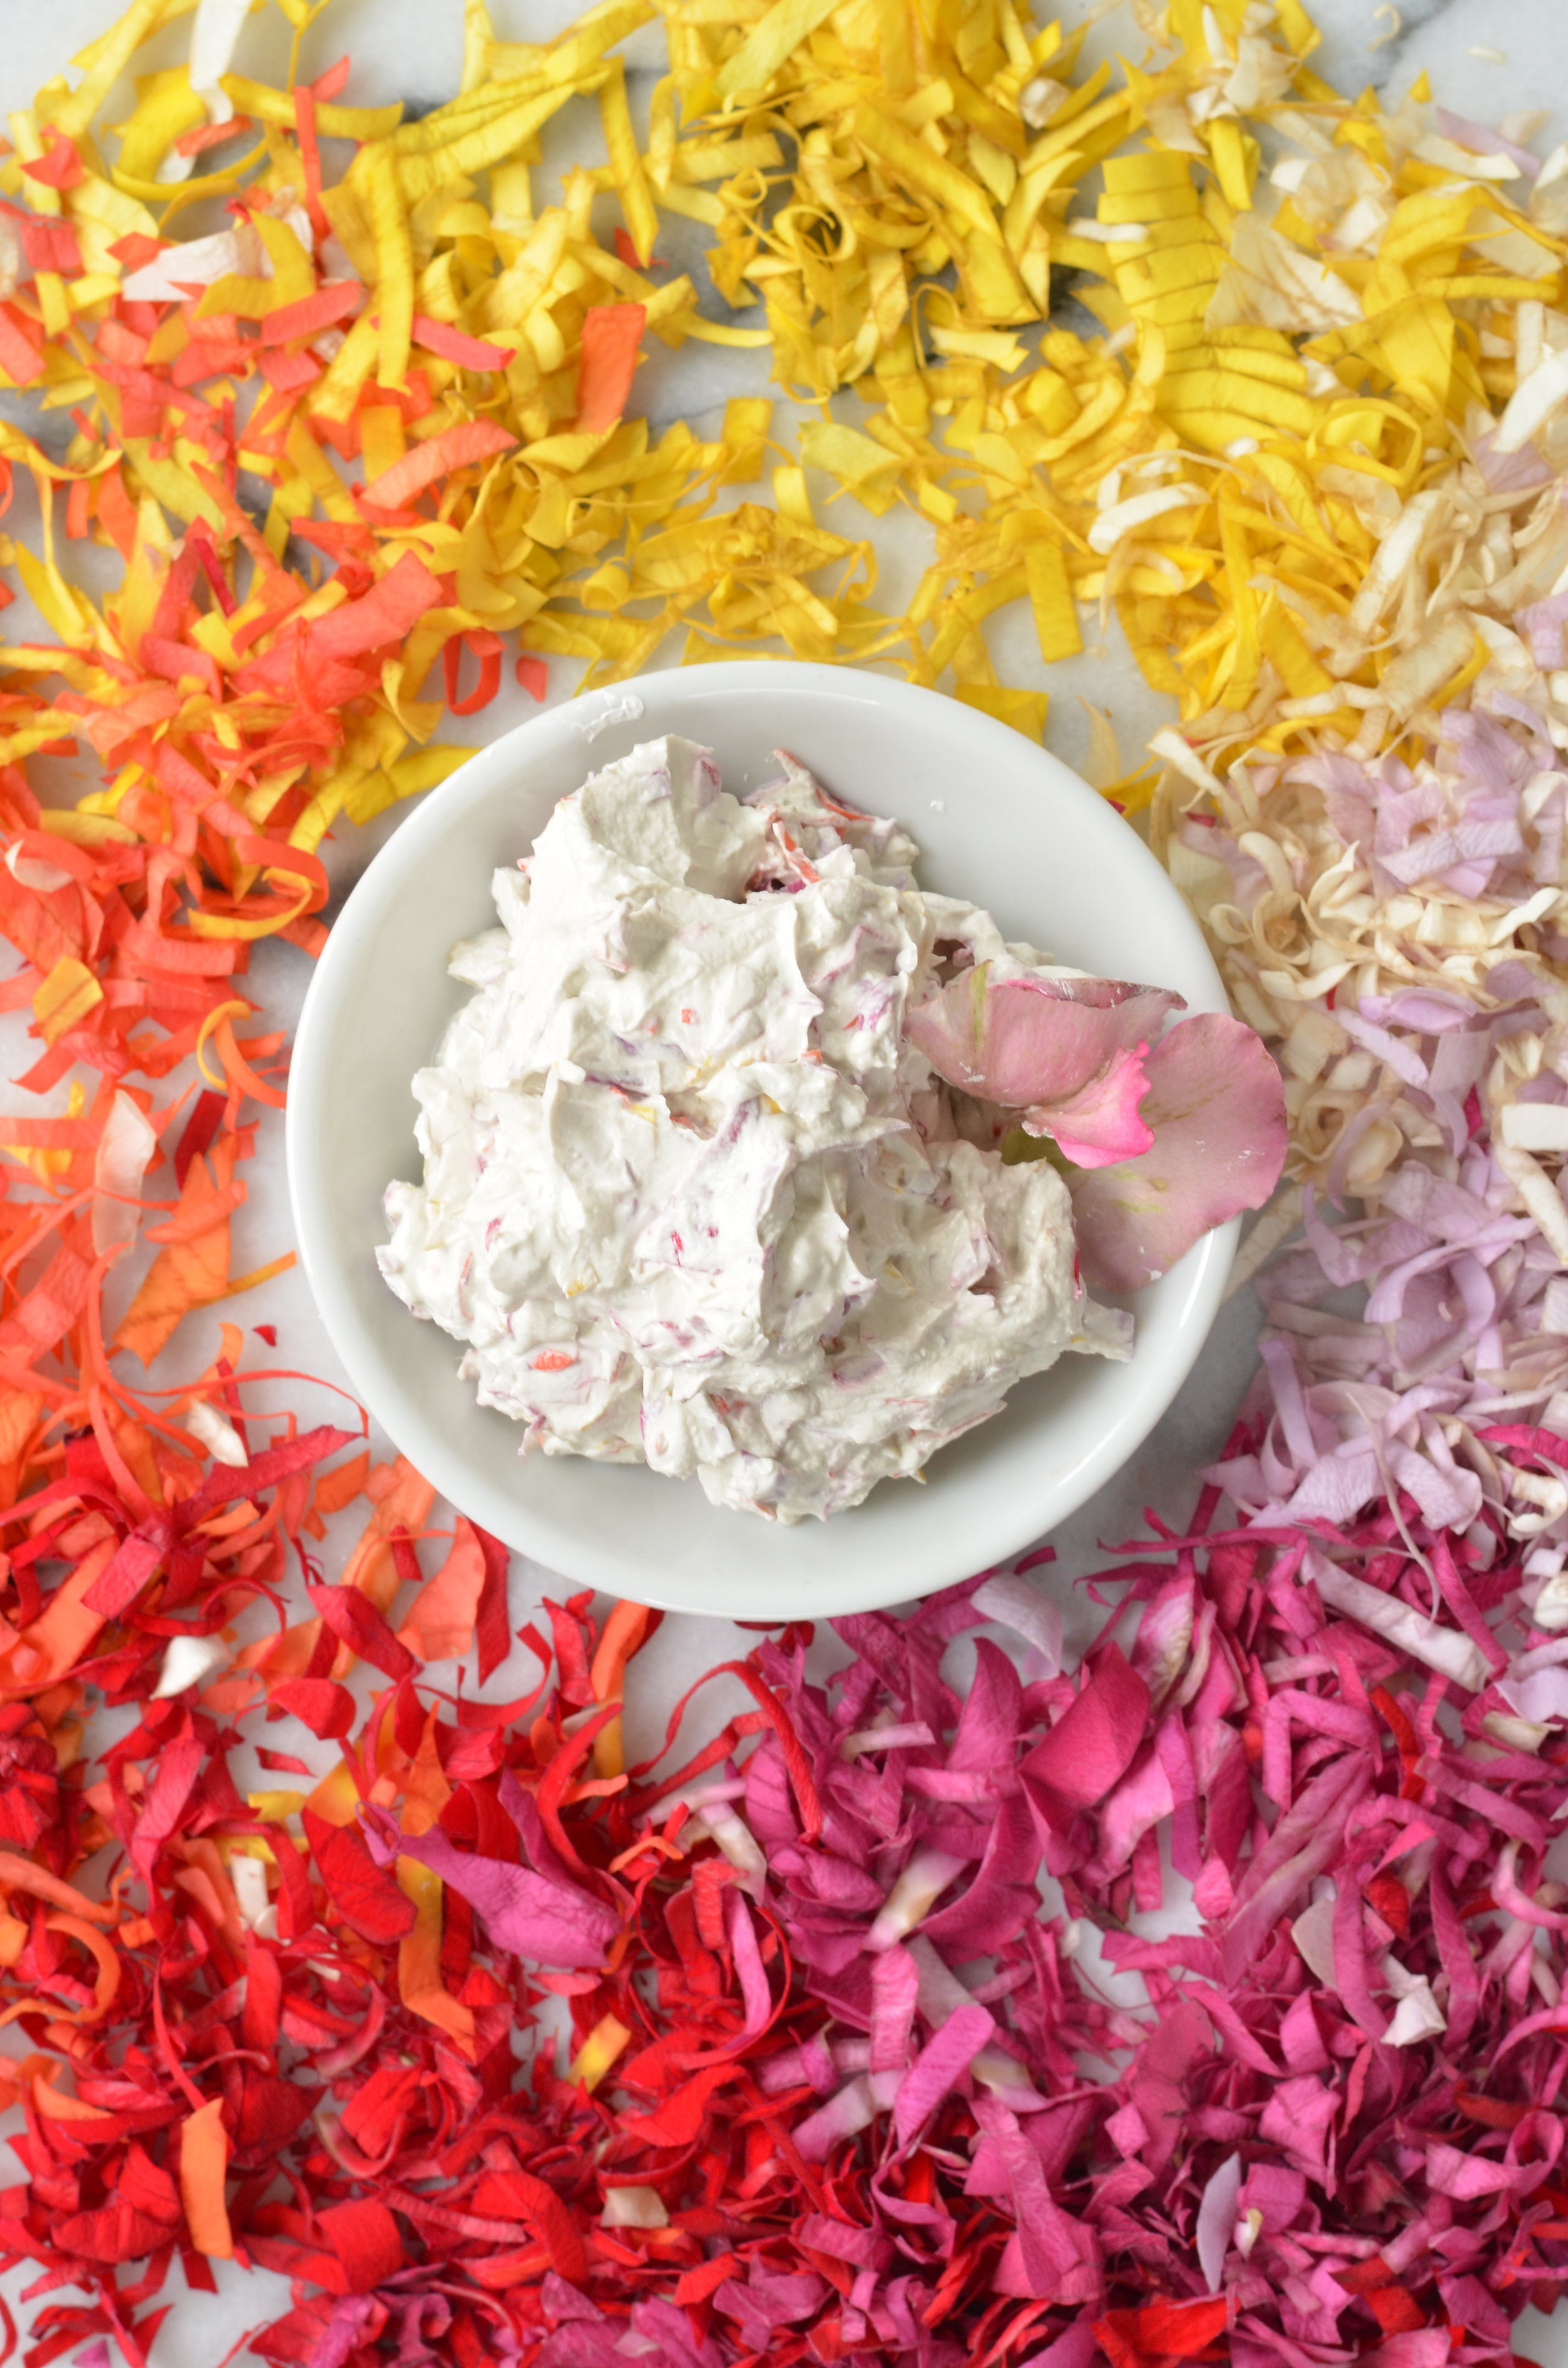 Confetti Facial Mask   Willow & Sage Magazine   Styling and photography by Mary Helen Leonard